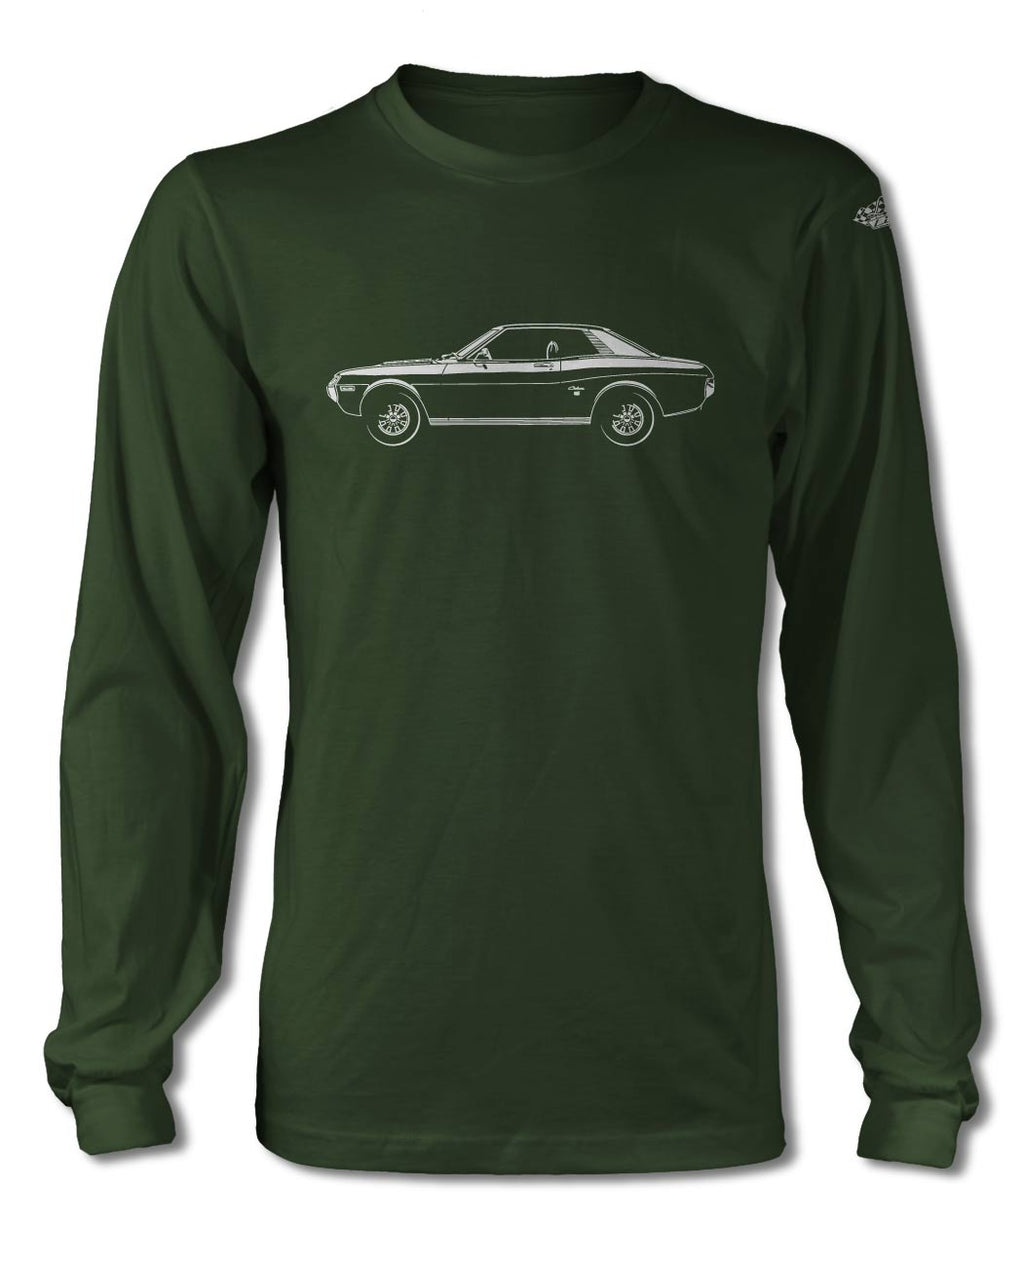 Toyota Celica Hardtop Coupe 1970 – 1977 T-Shirt - Long Sleeves - Side View